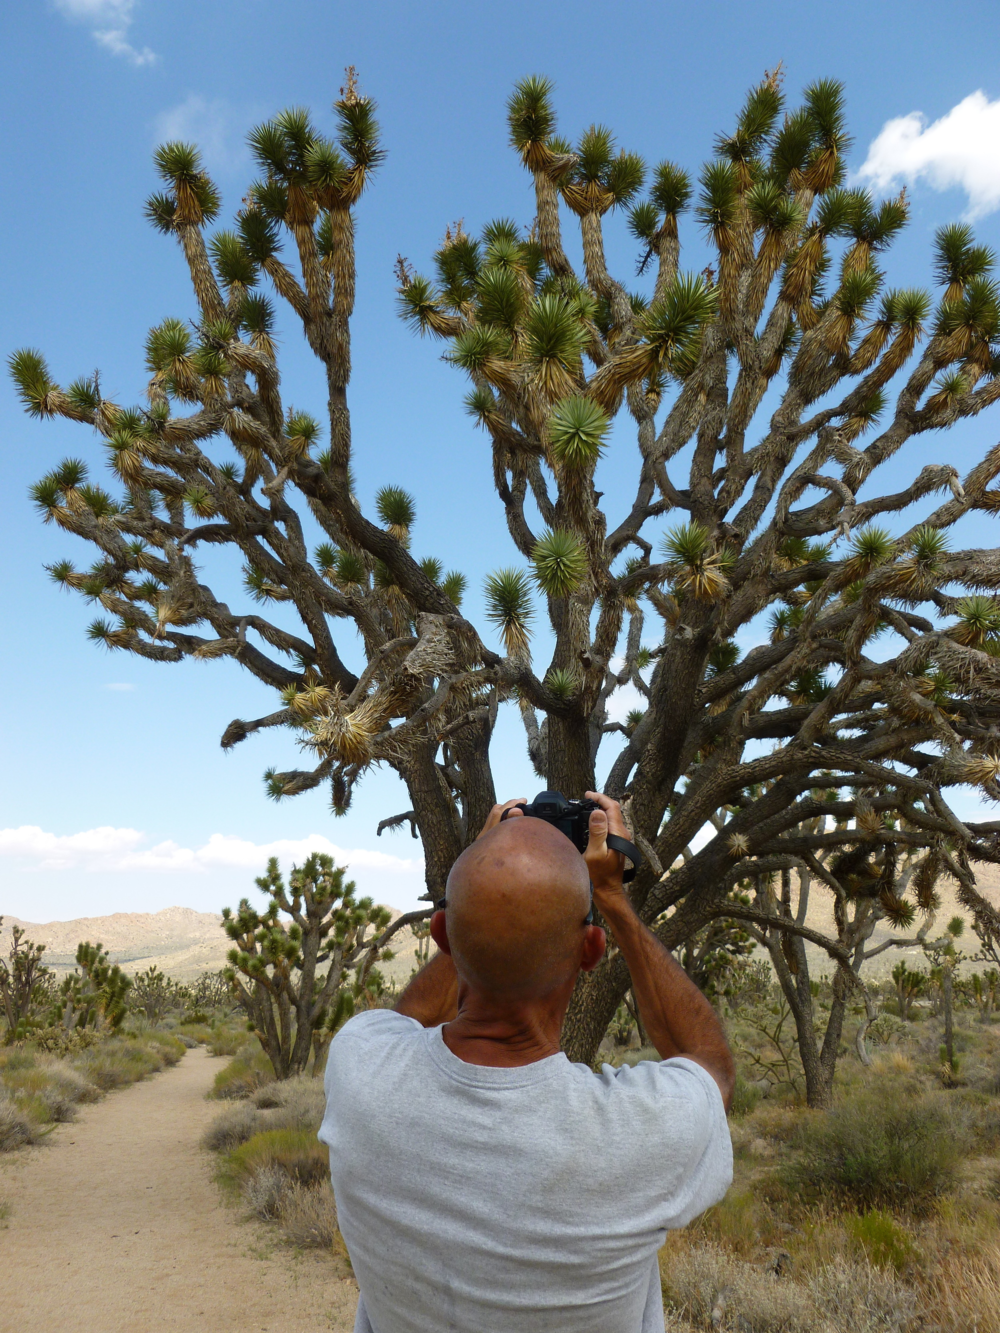 A visitor captures memories along the Teutonia Peak Trail in the Preserve. The trail crosses dense Joshua tree woodland and gently climbs a granite outcrop for magnificent views of the Mojave.